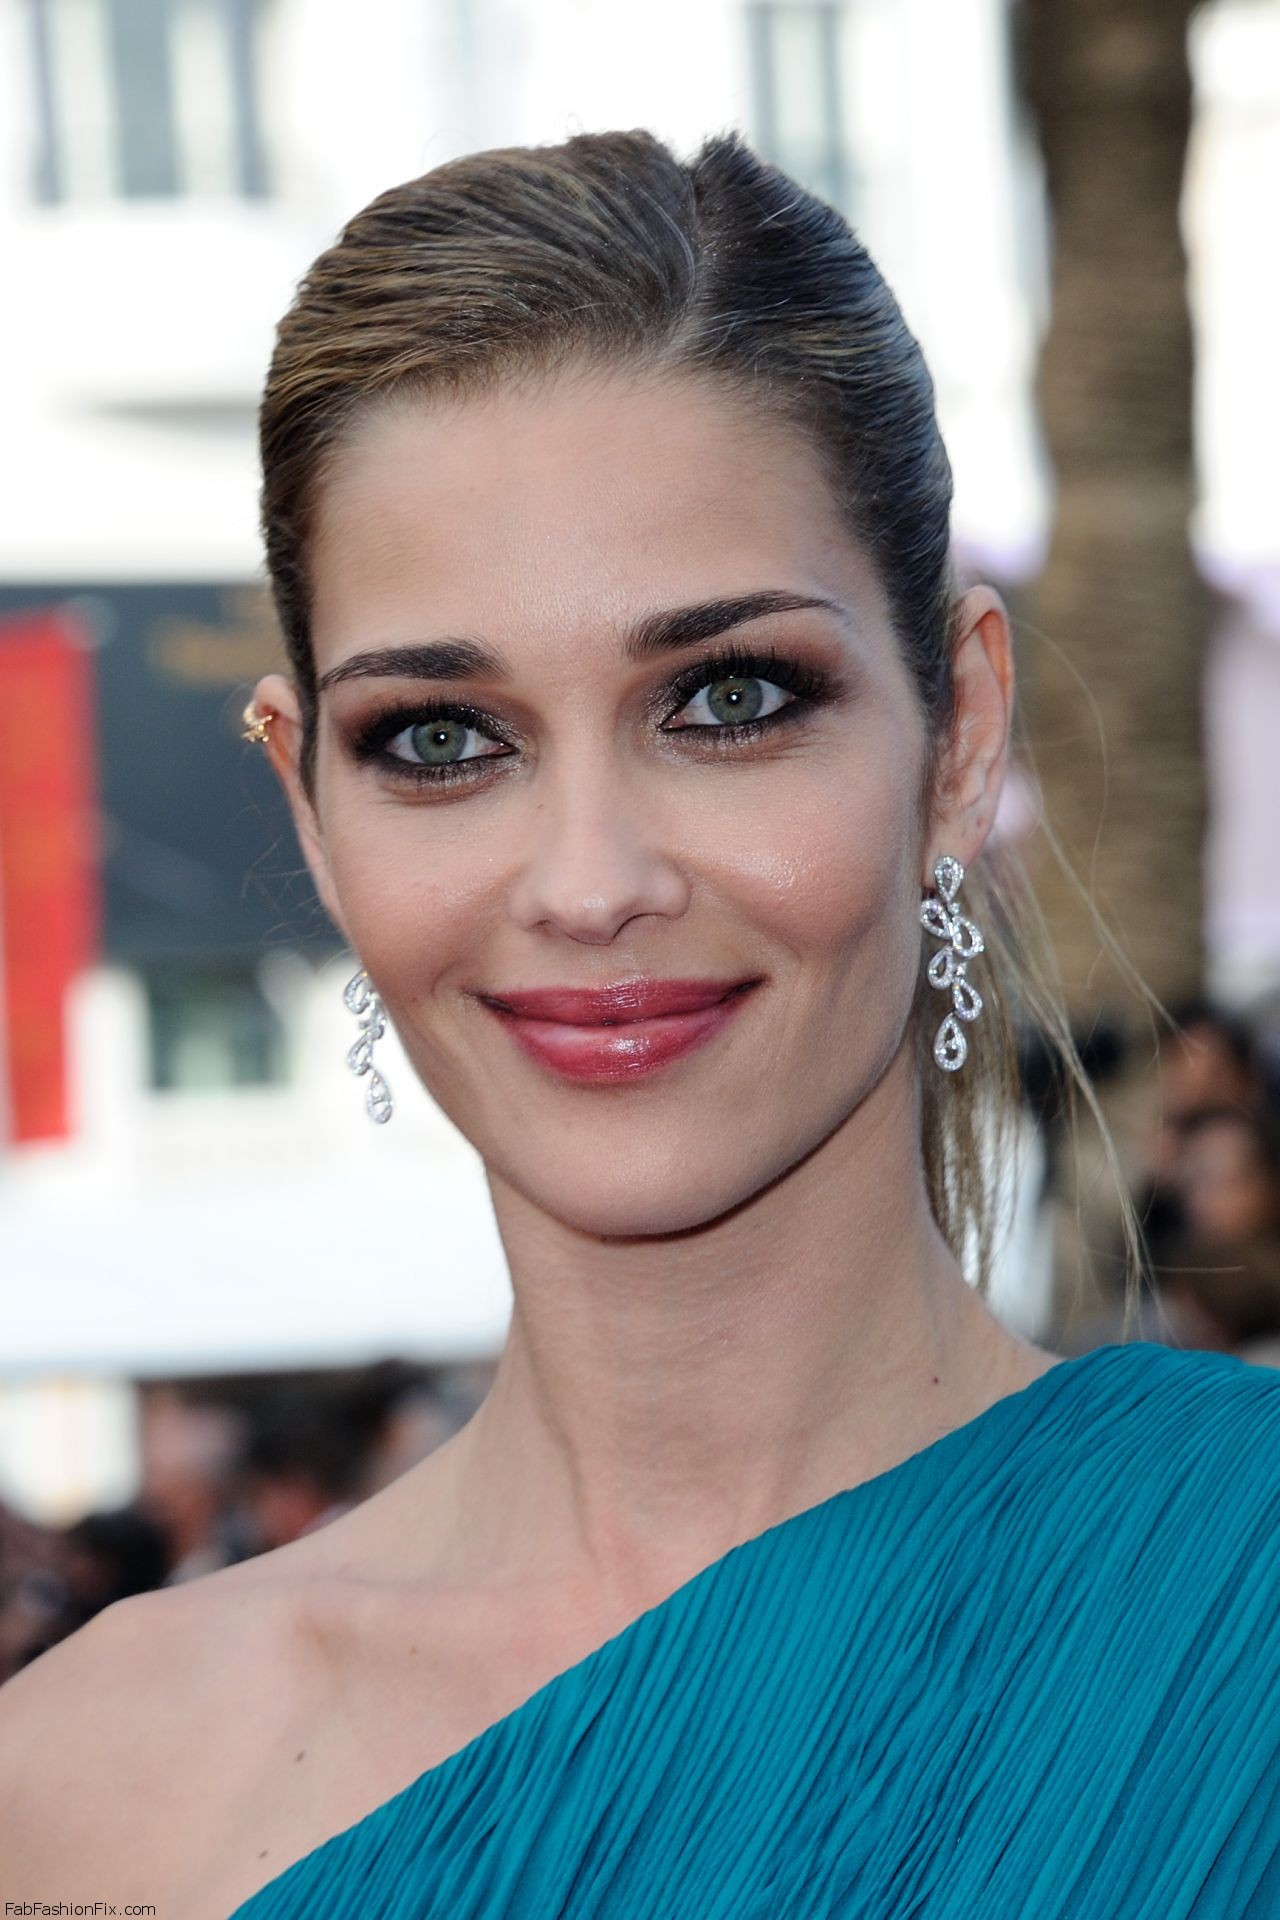 ana-beatriz-barros-the-unknown-girl-la-fille-inconnue-premiere-at-69th-cannes-film-festival-5-18-2016-5